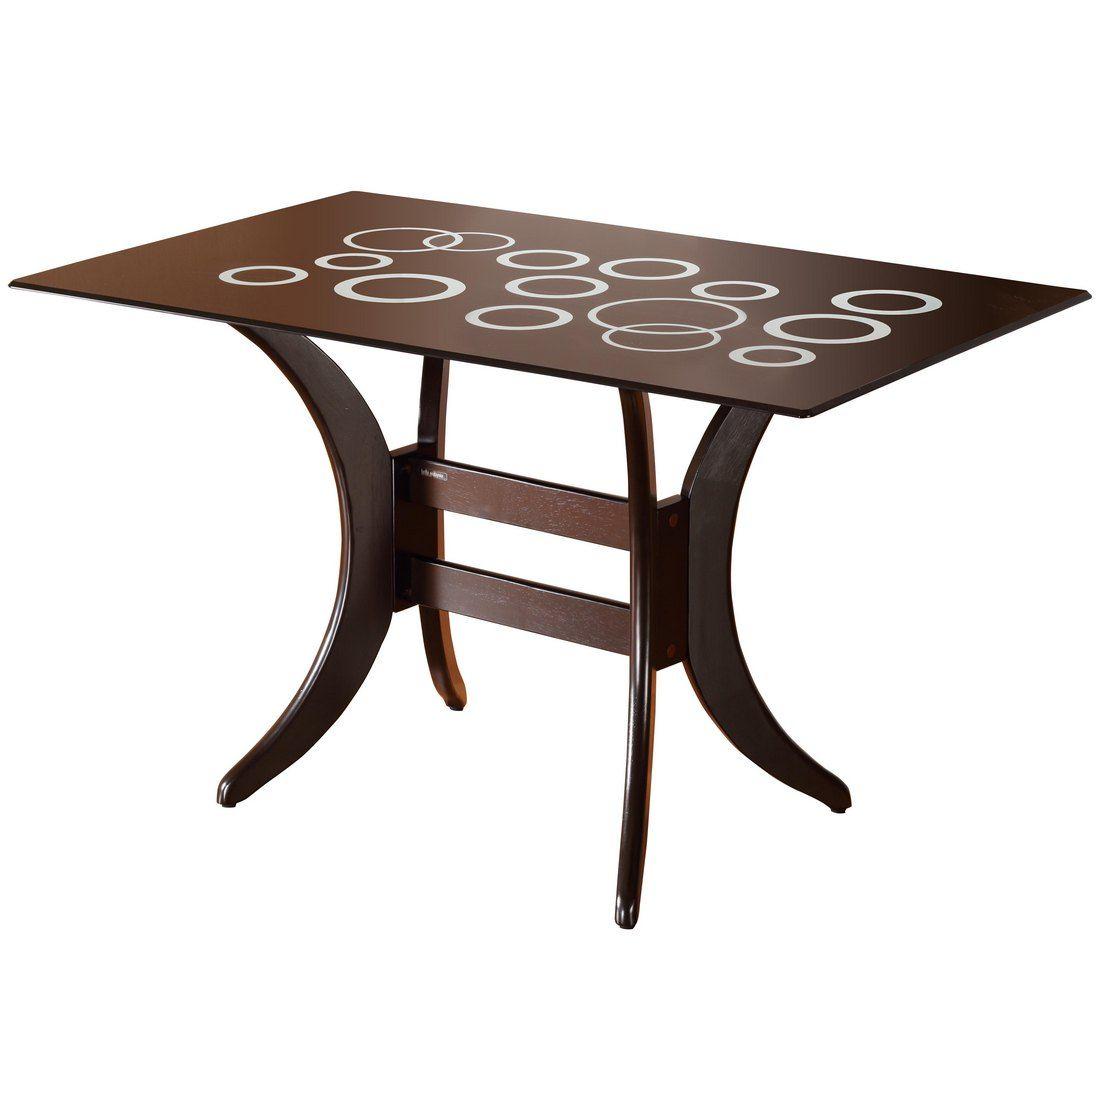 Beata glass dining table 4x2 5 accuto xl chair for 5 chair dining table